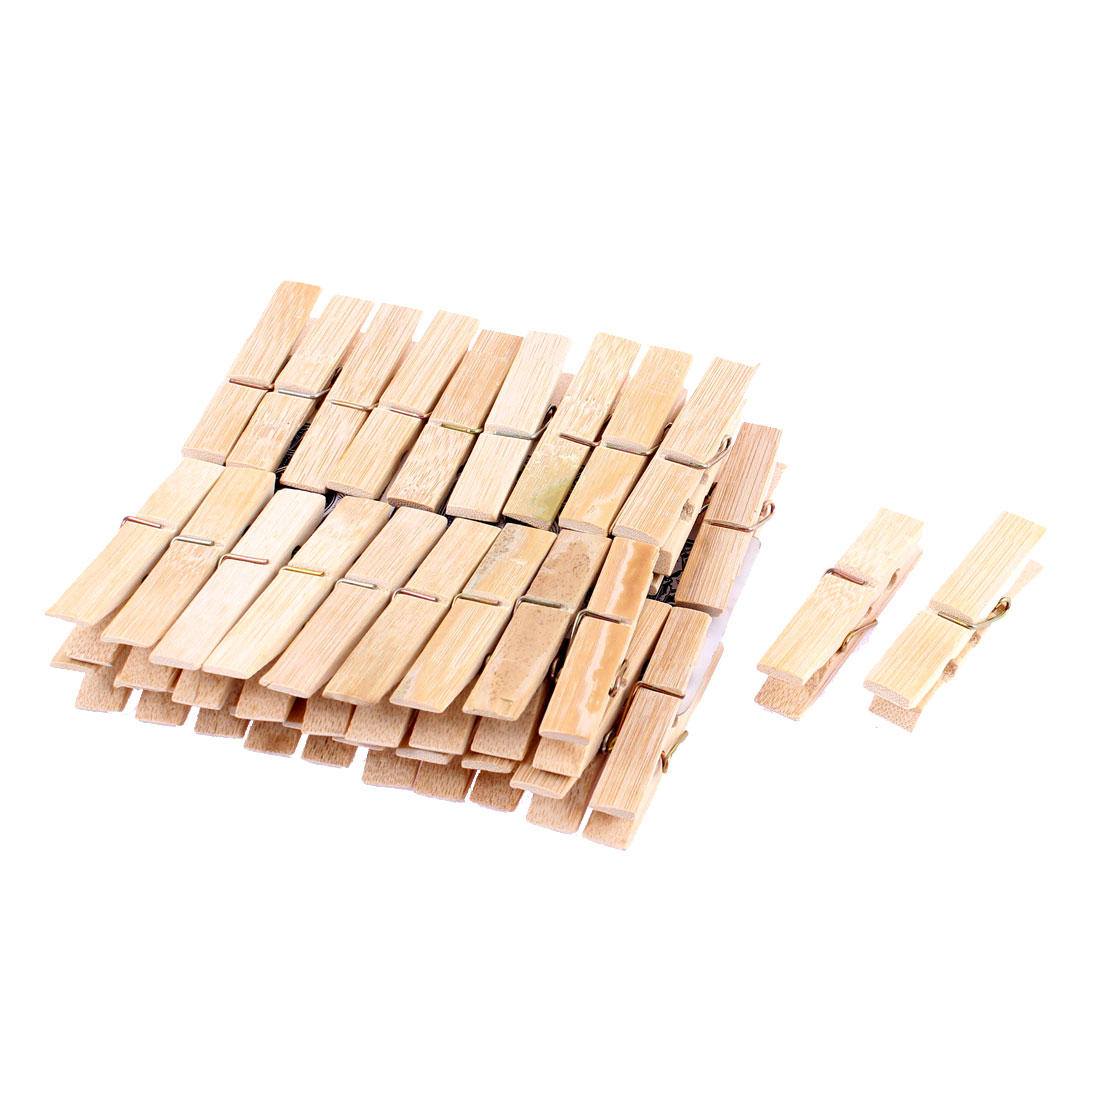 Laundry Clothes Pins Hanging Clips Beige 40Pcs